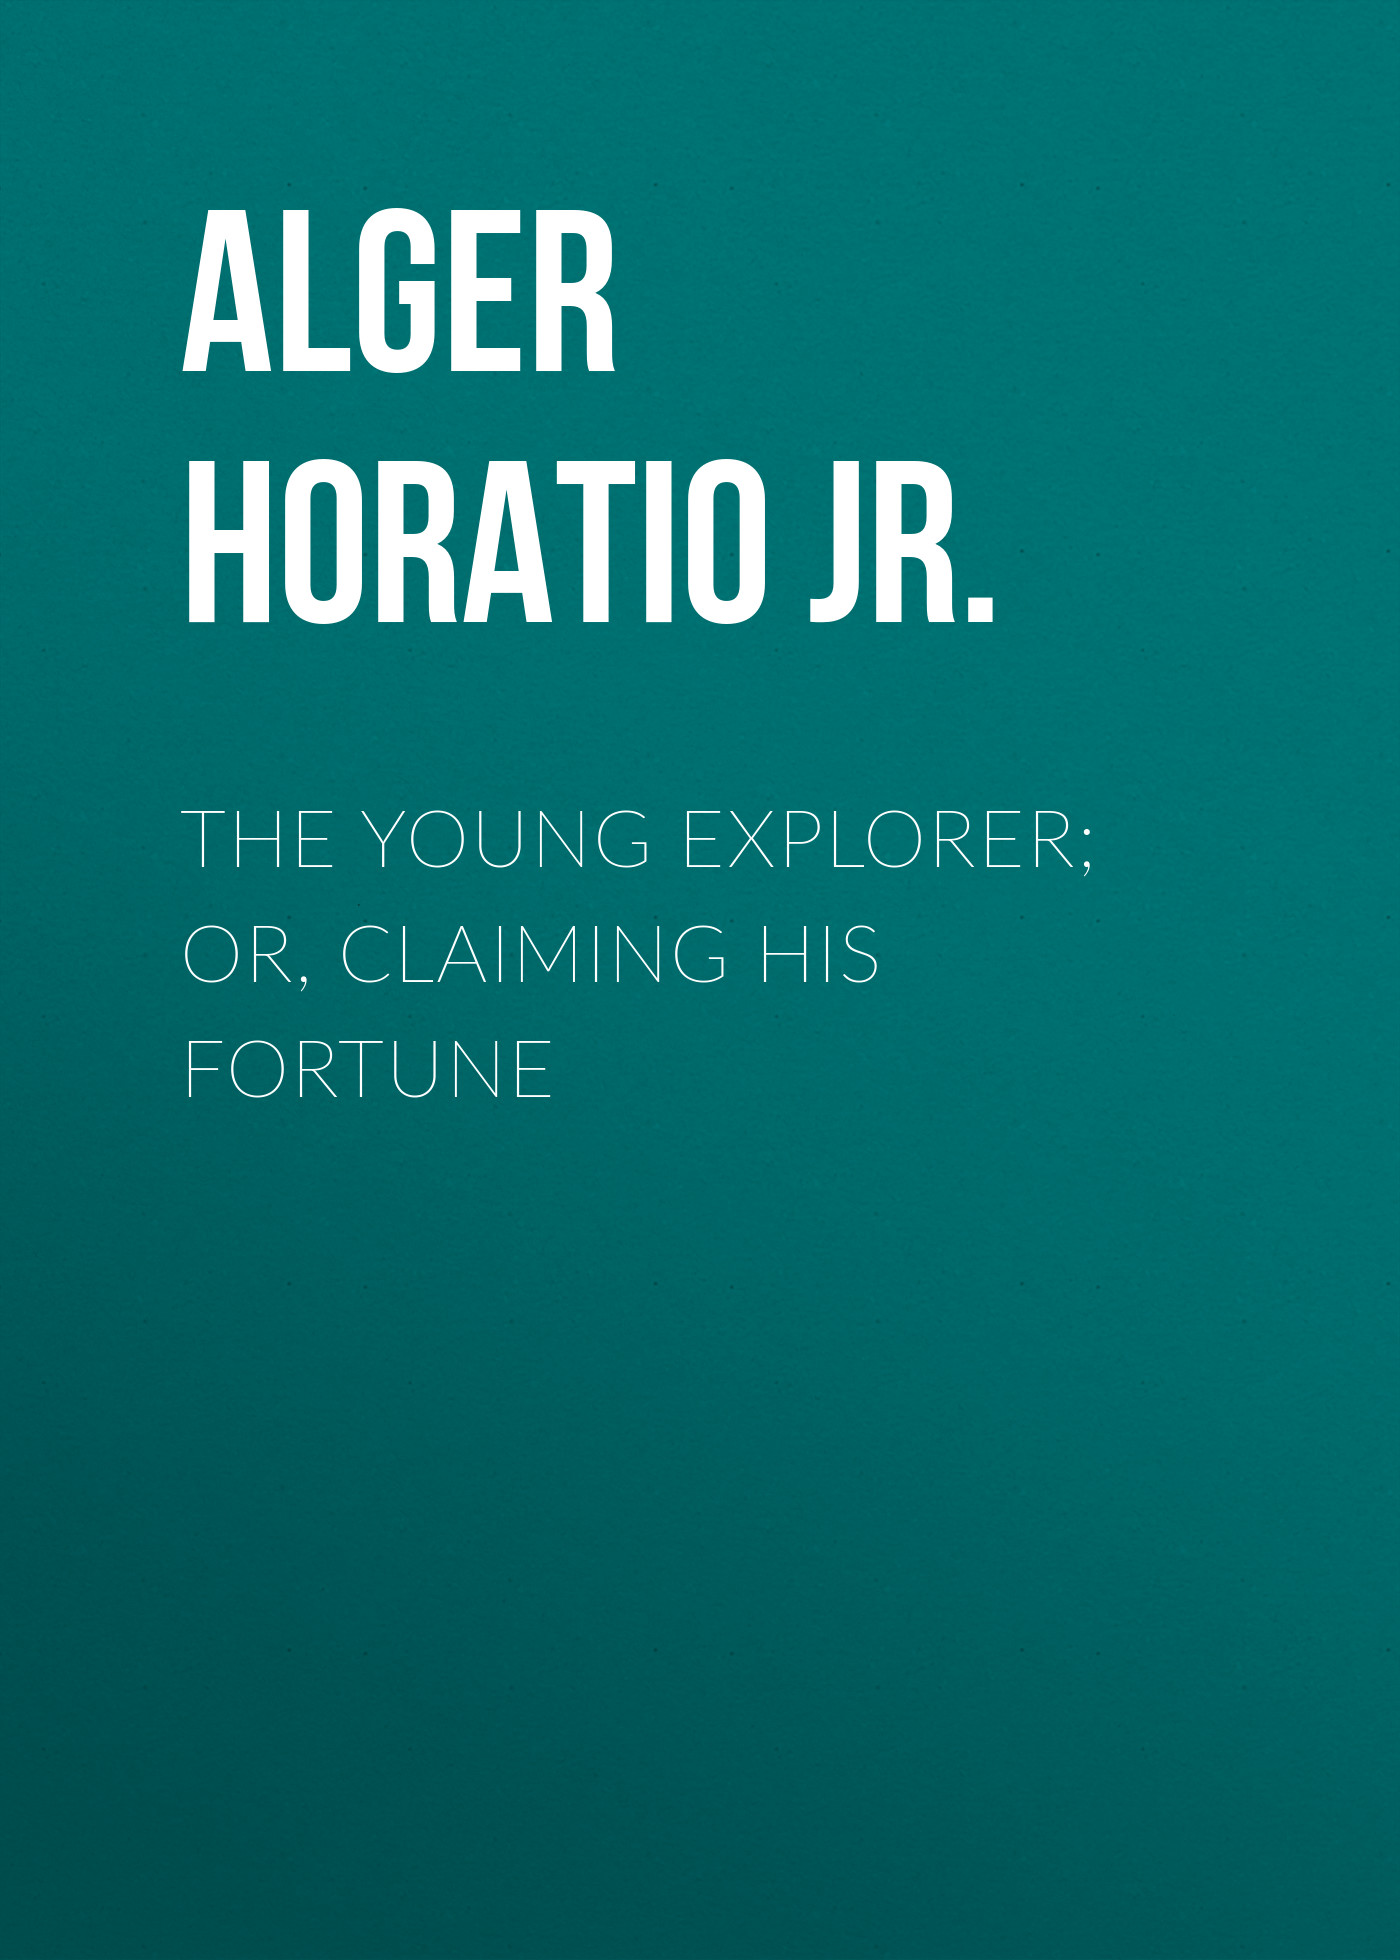 цены Alger Horatio Jr. The Young Explorer; Or, Claiming His Fortune